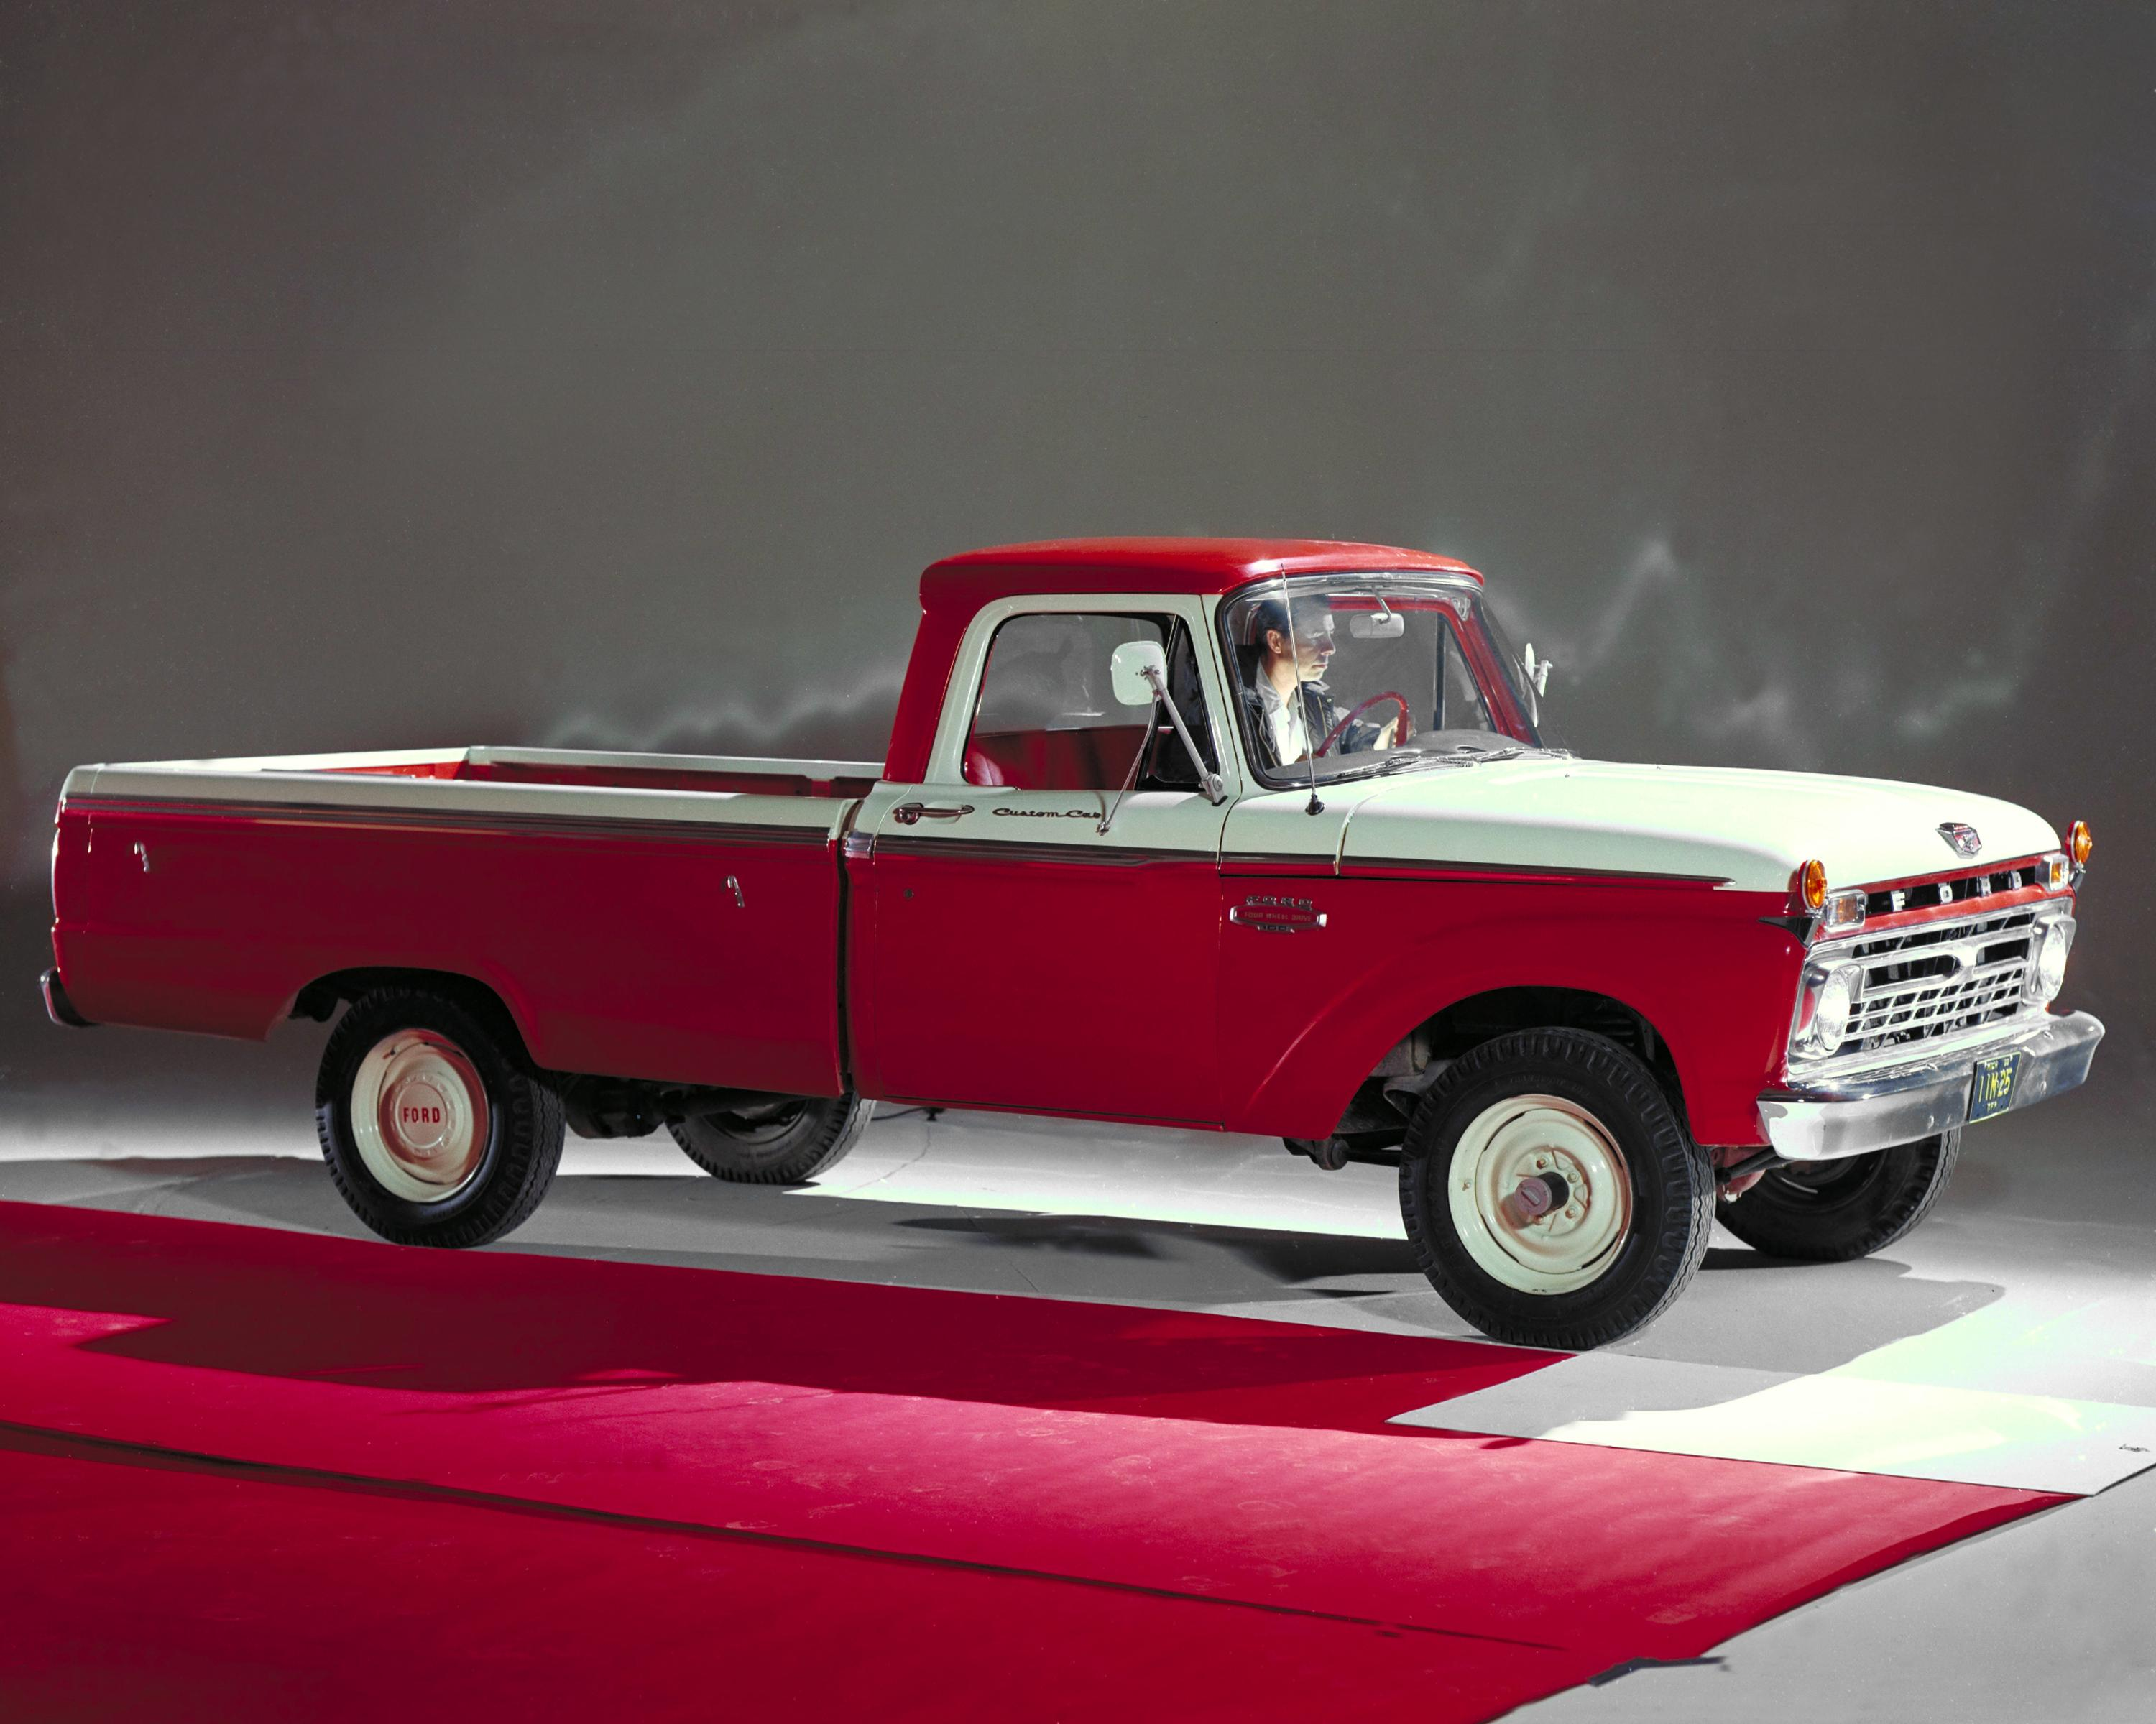 The Complete Book of Classic Ford F-Series Pickups: Every Model from